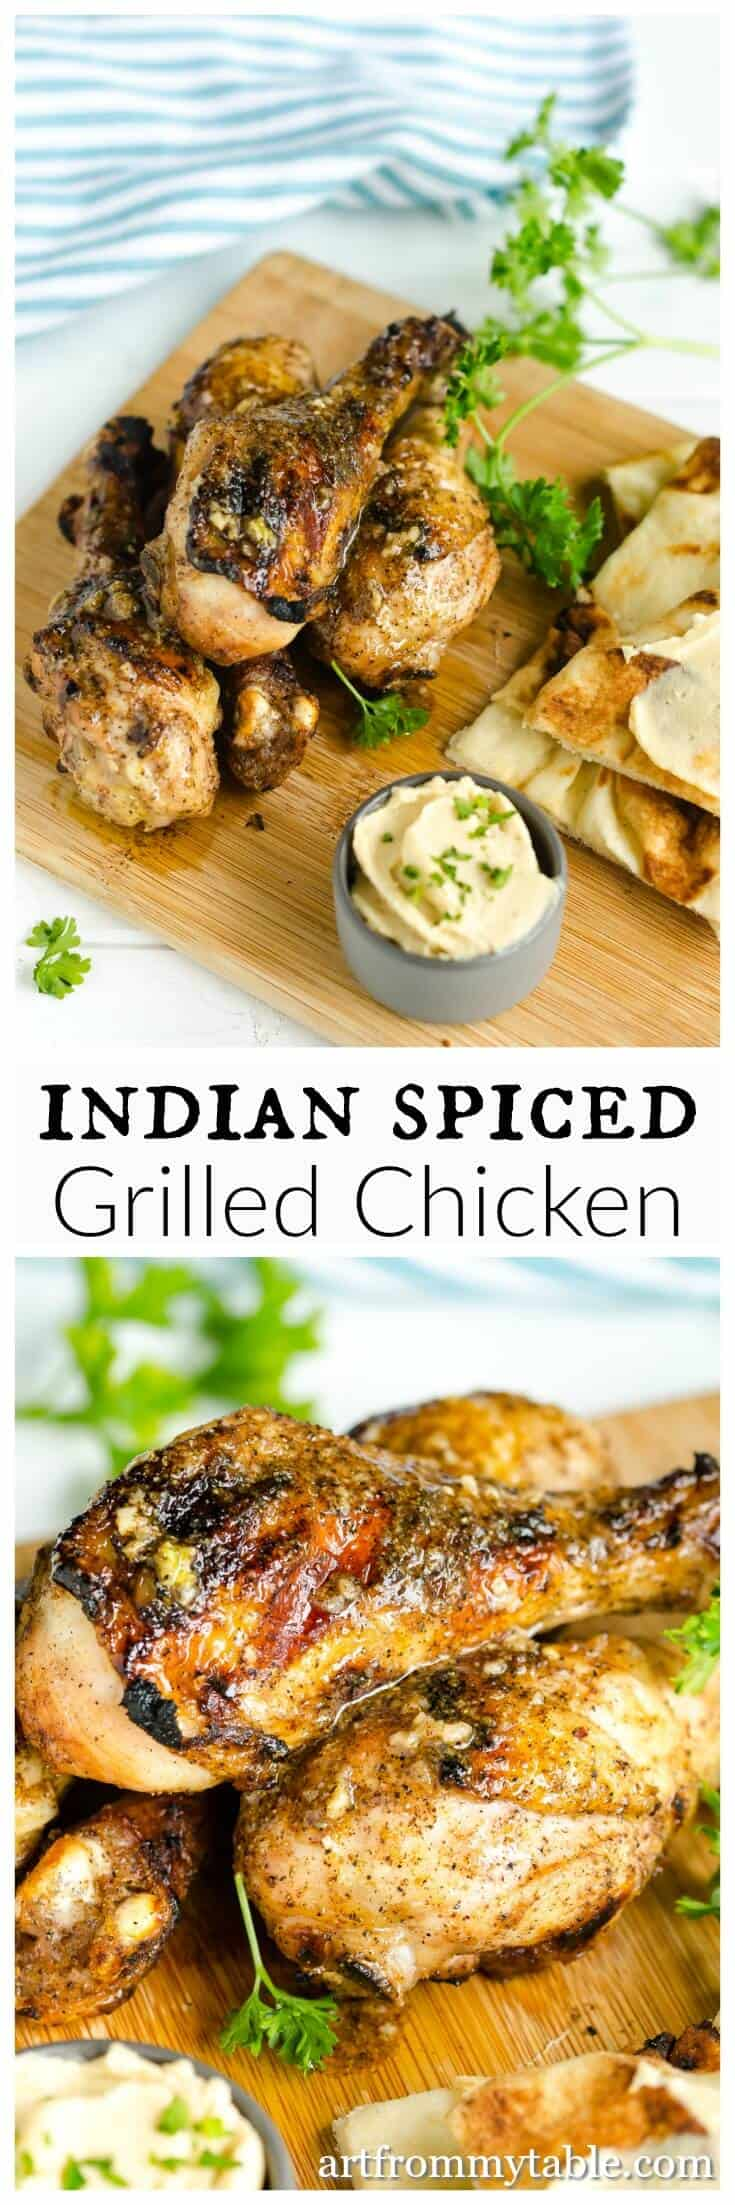 If you're getting sick of the same old chicken night after night, this is the answer you've been waiting for. Garam Masala, which literally means 'warm spice', is the key ingredient this Indian Spiced Grilled Chicken. #easy #grilledchickenrecipe #weeknightmeals #Indianinspired #dinner